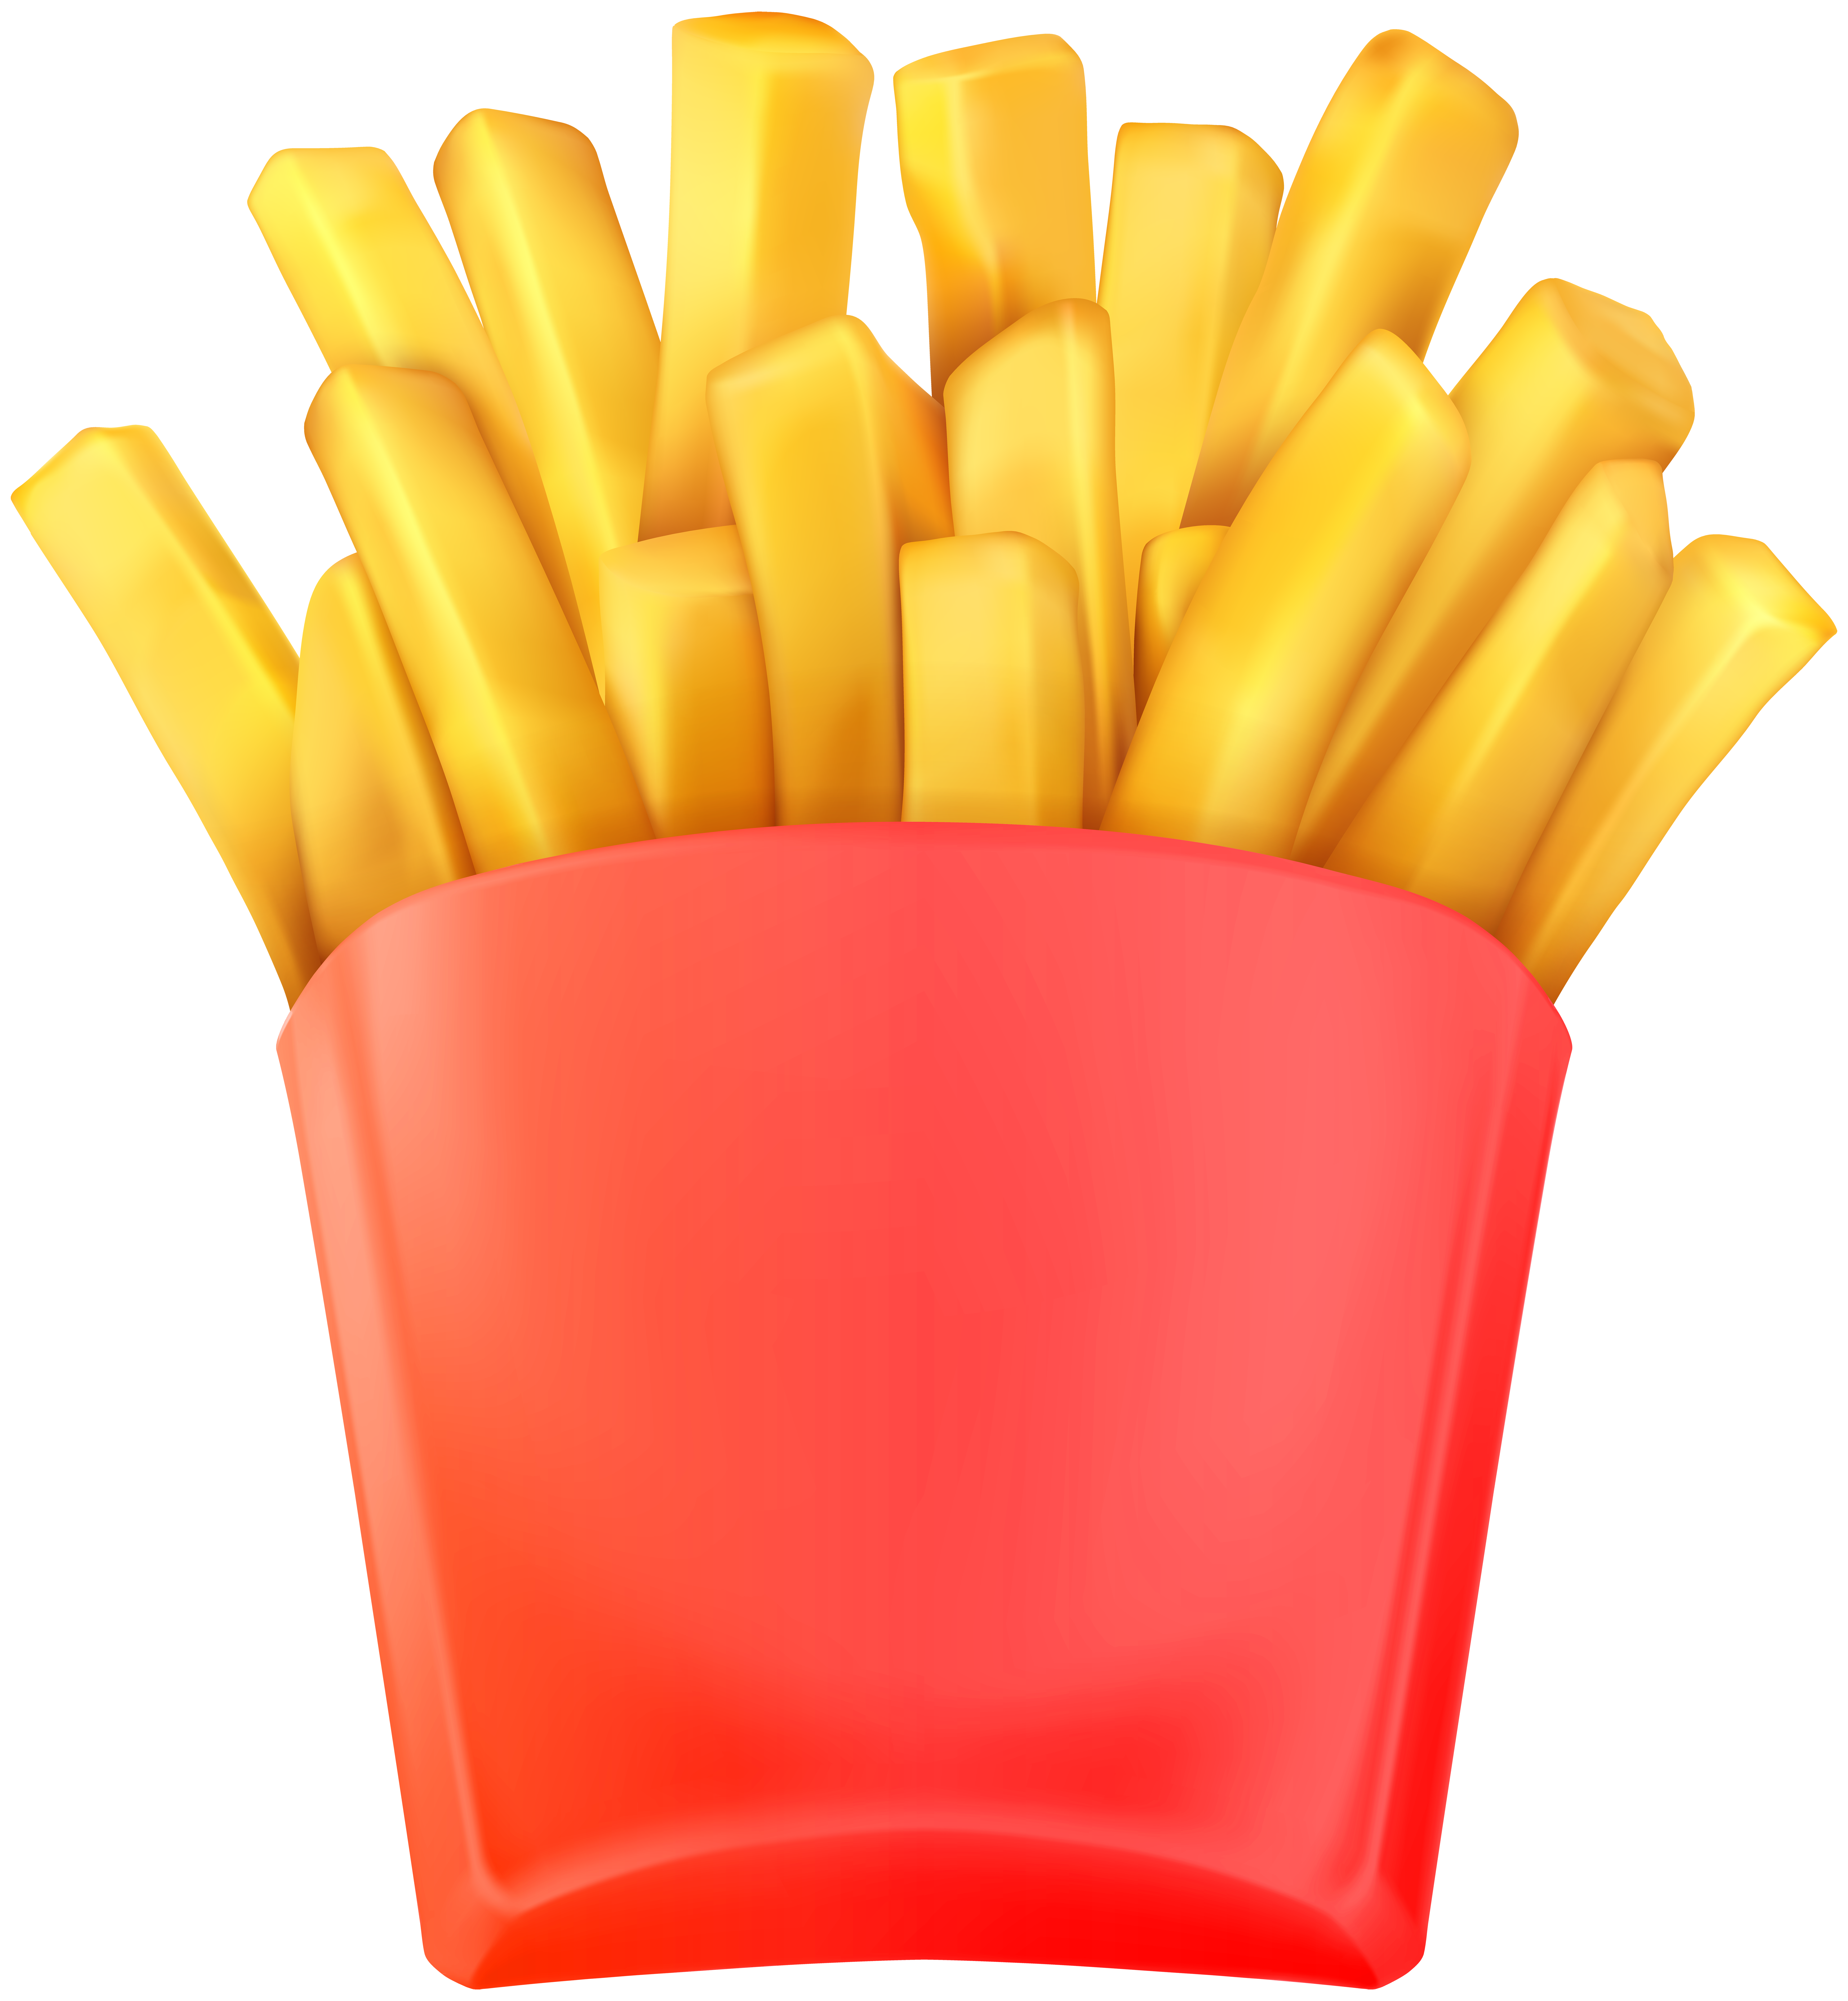 French Fries Transparent Clip Art PNG Image.